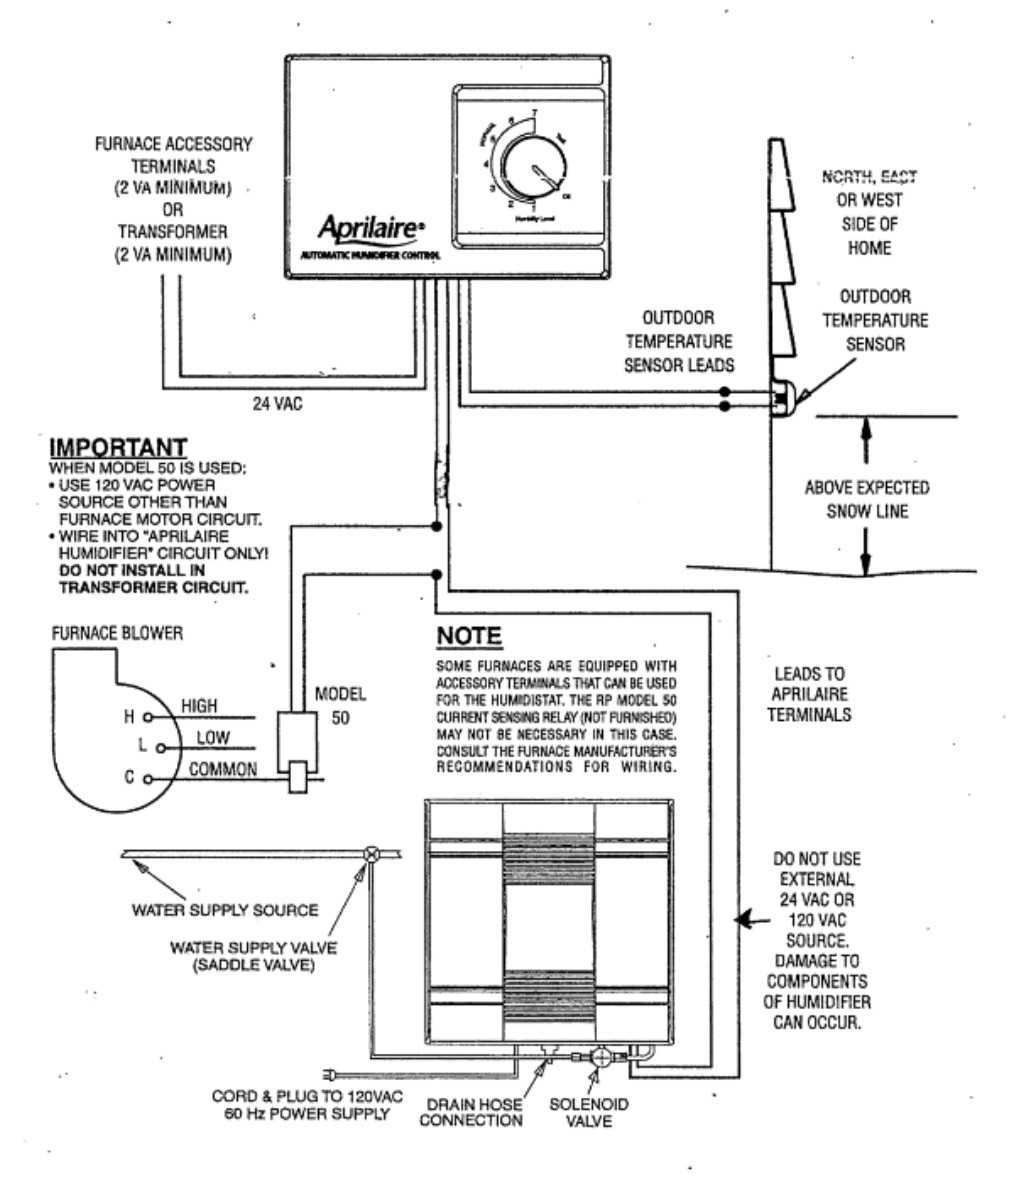 Heating - Wiring Aprilaire 700 Humidifier To York Tg9* Furnace - Aprilaire 700 Wiring Diagram